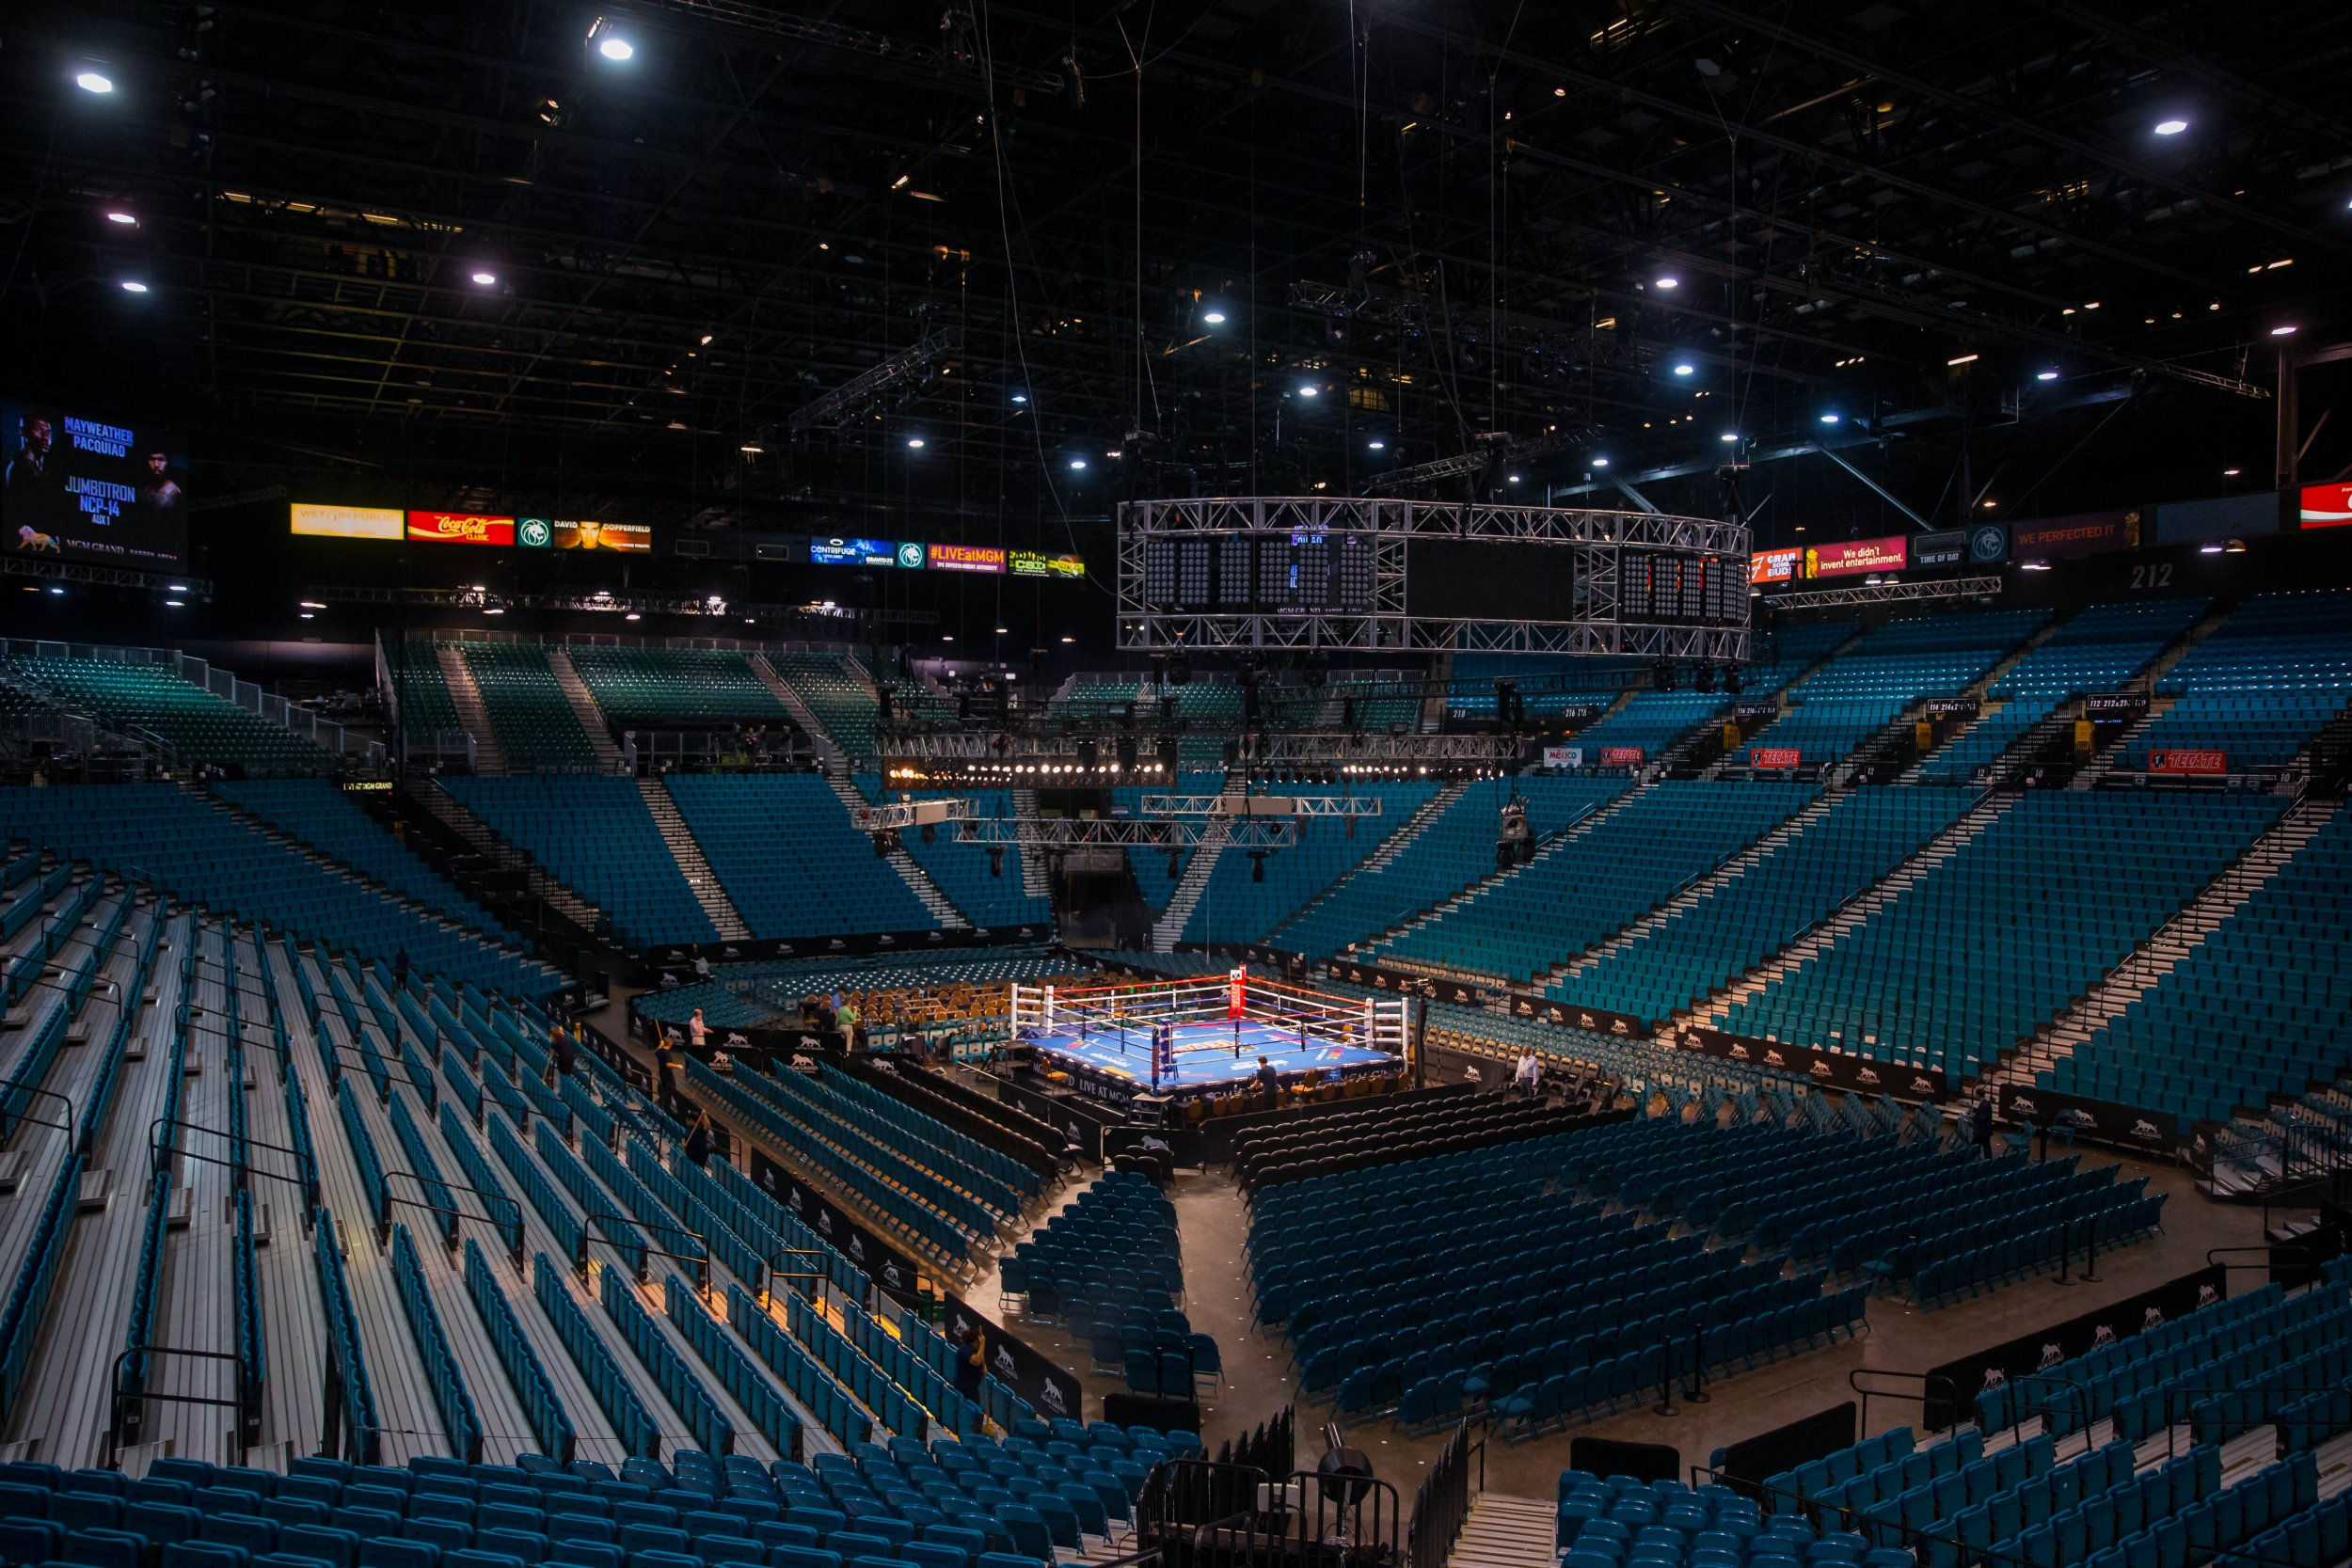 Culture Of Violence >> Human Rights Group: Don't Spend $100 on Mayweather-Pacquiao